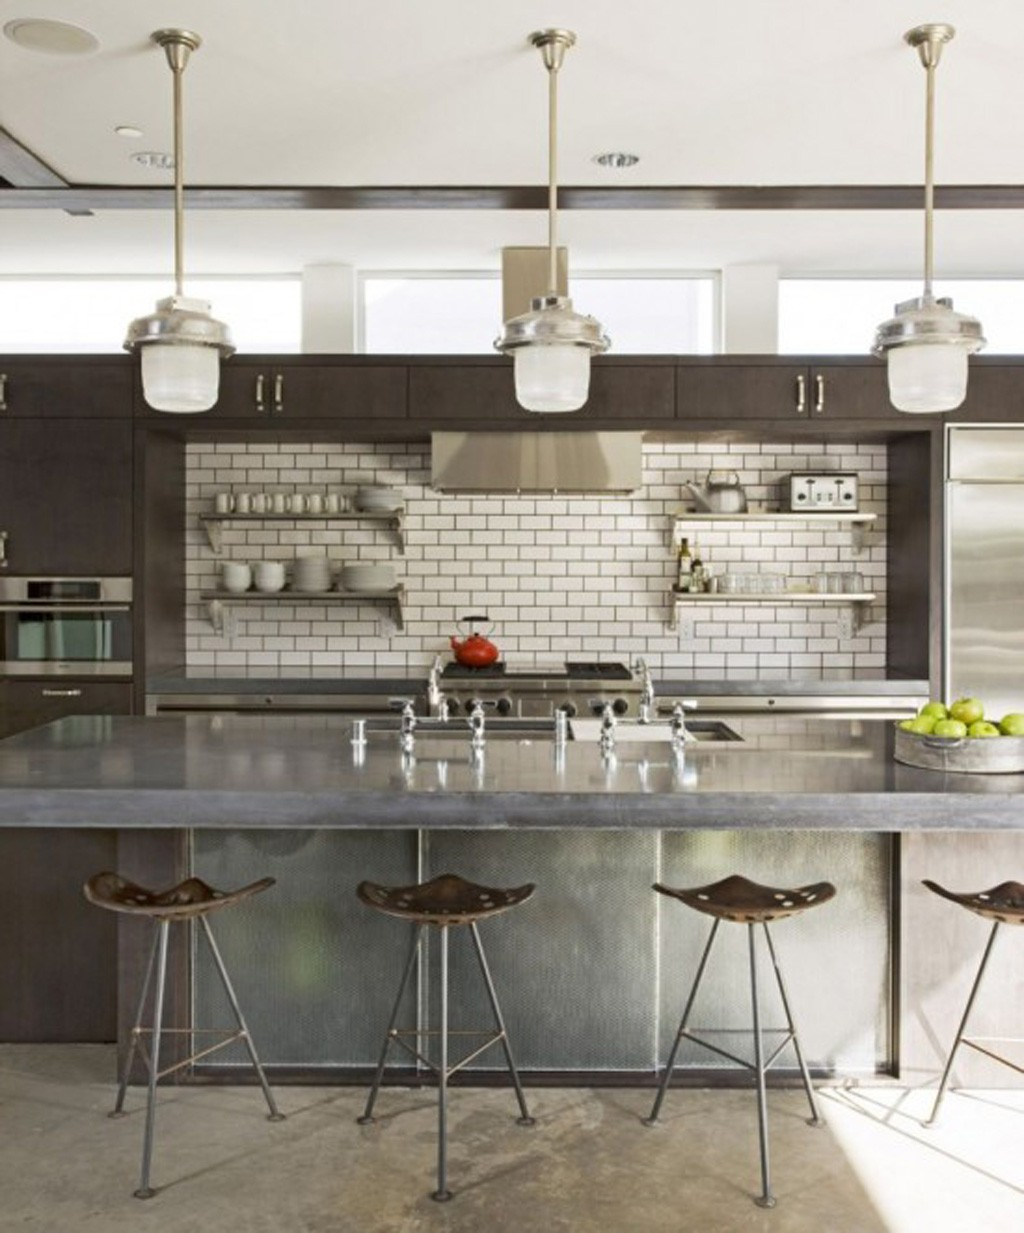 Industrial Looking Kitchen Minimalist Decor Minimalism In The Home Kitchens Minimalism